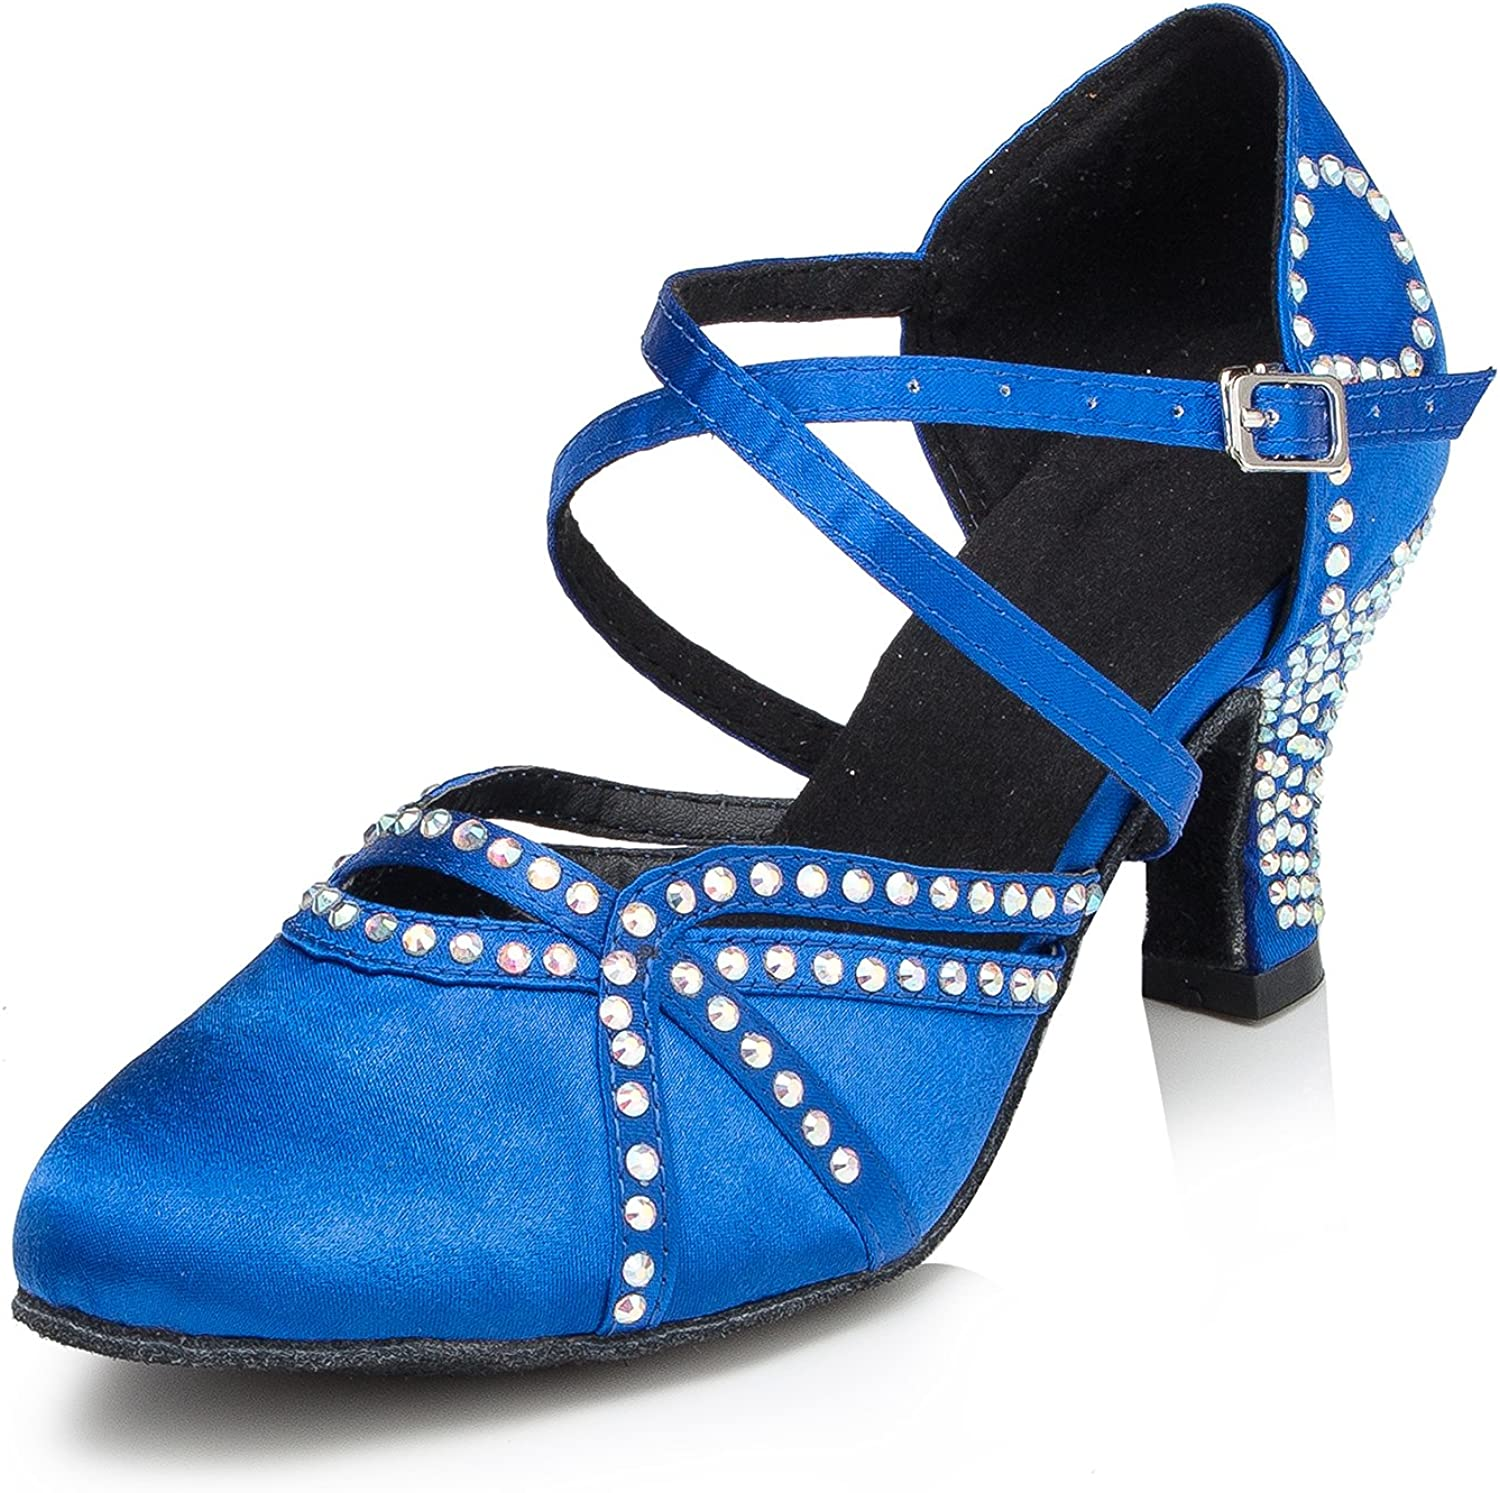 URVIP Women's Sequins Heels Pumps Modern Latin Tango shoes Cross Ankle Strap Buckle Dance shoes LD034